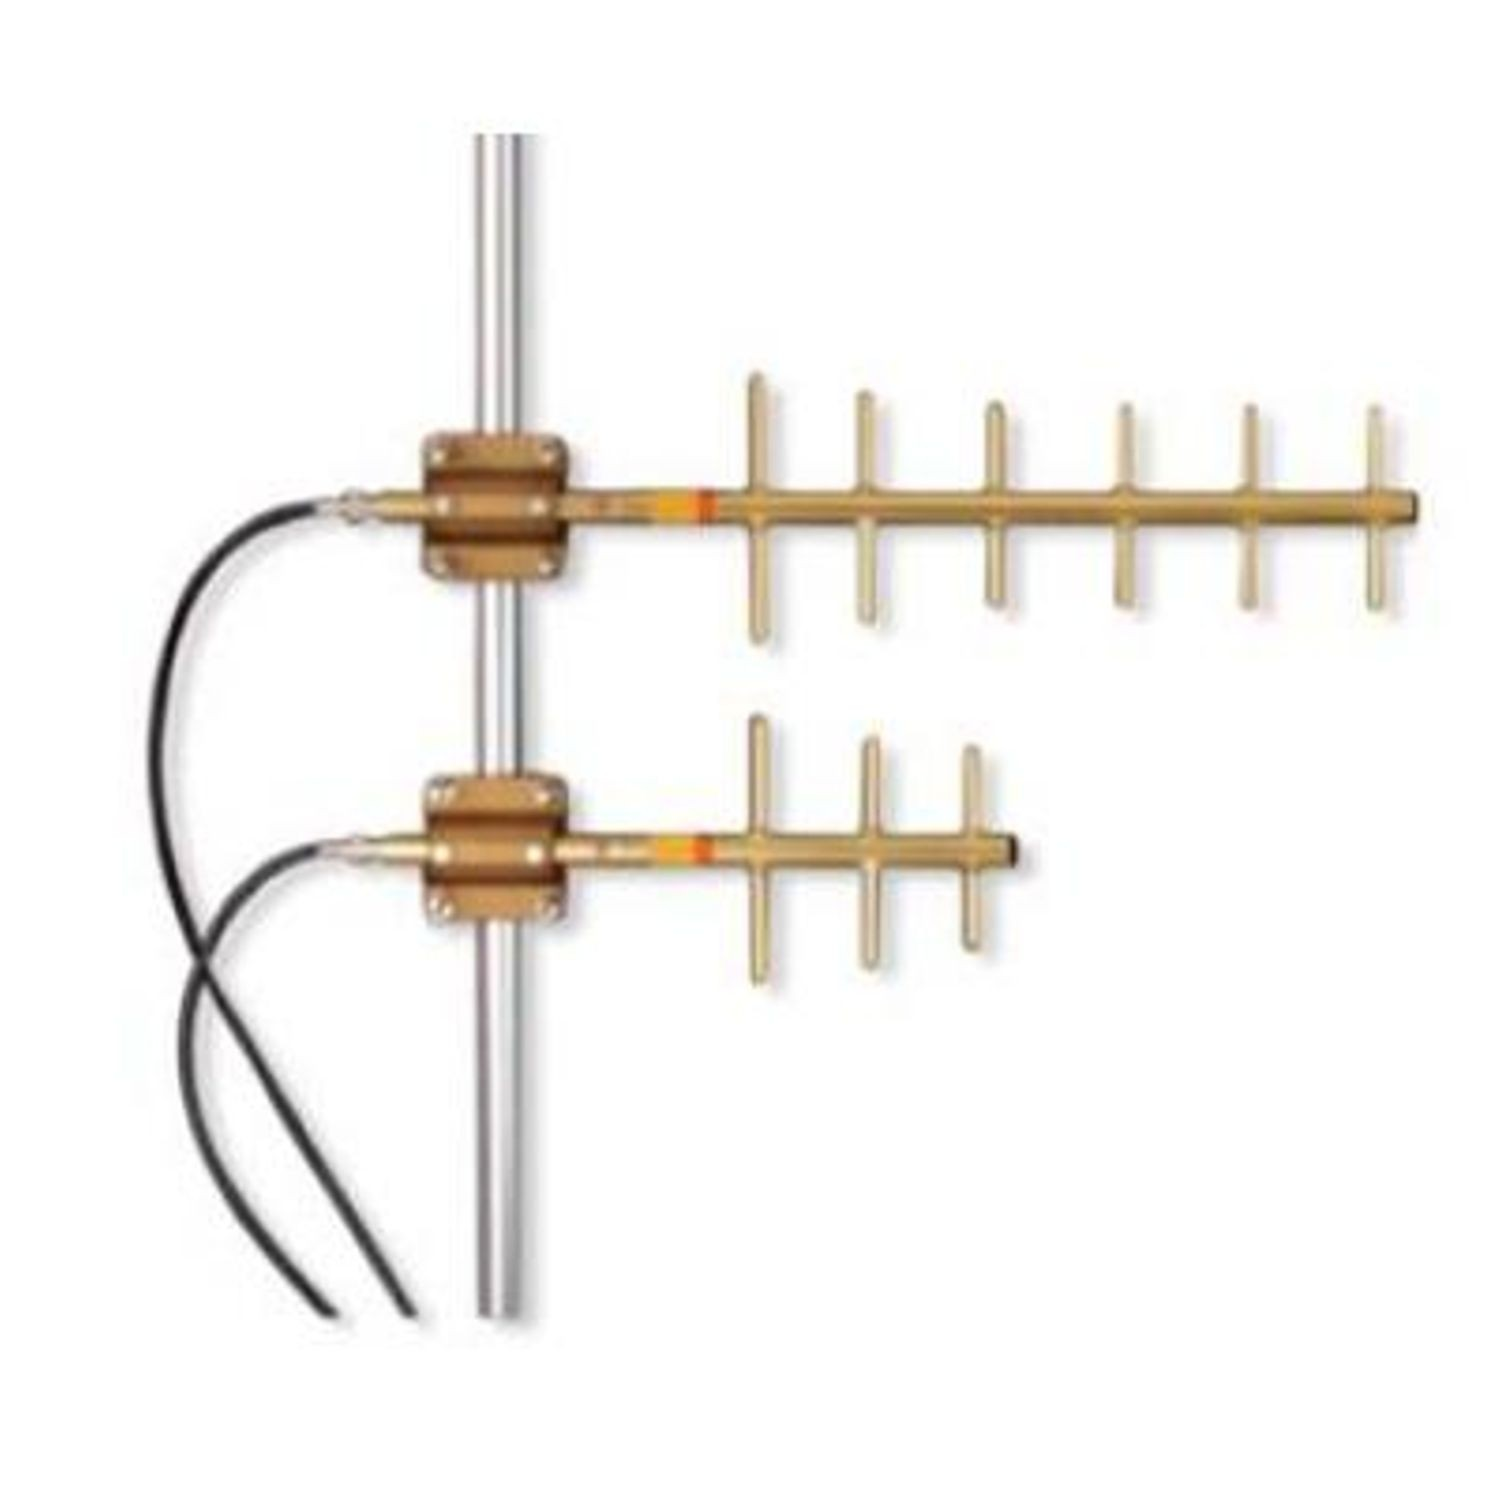 150-174 MHZ DIRECTIONAL YAGI ANTENNA, 3 ELEMENT, 7.1 DBD GAIN